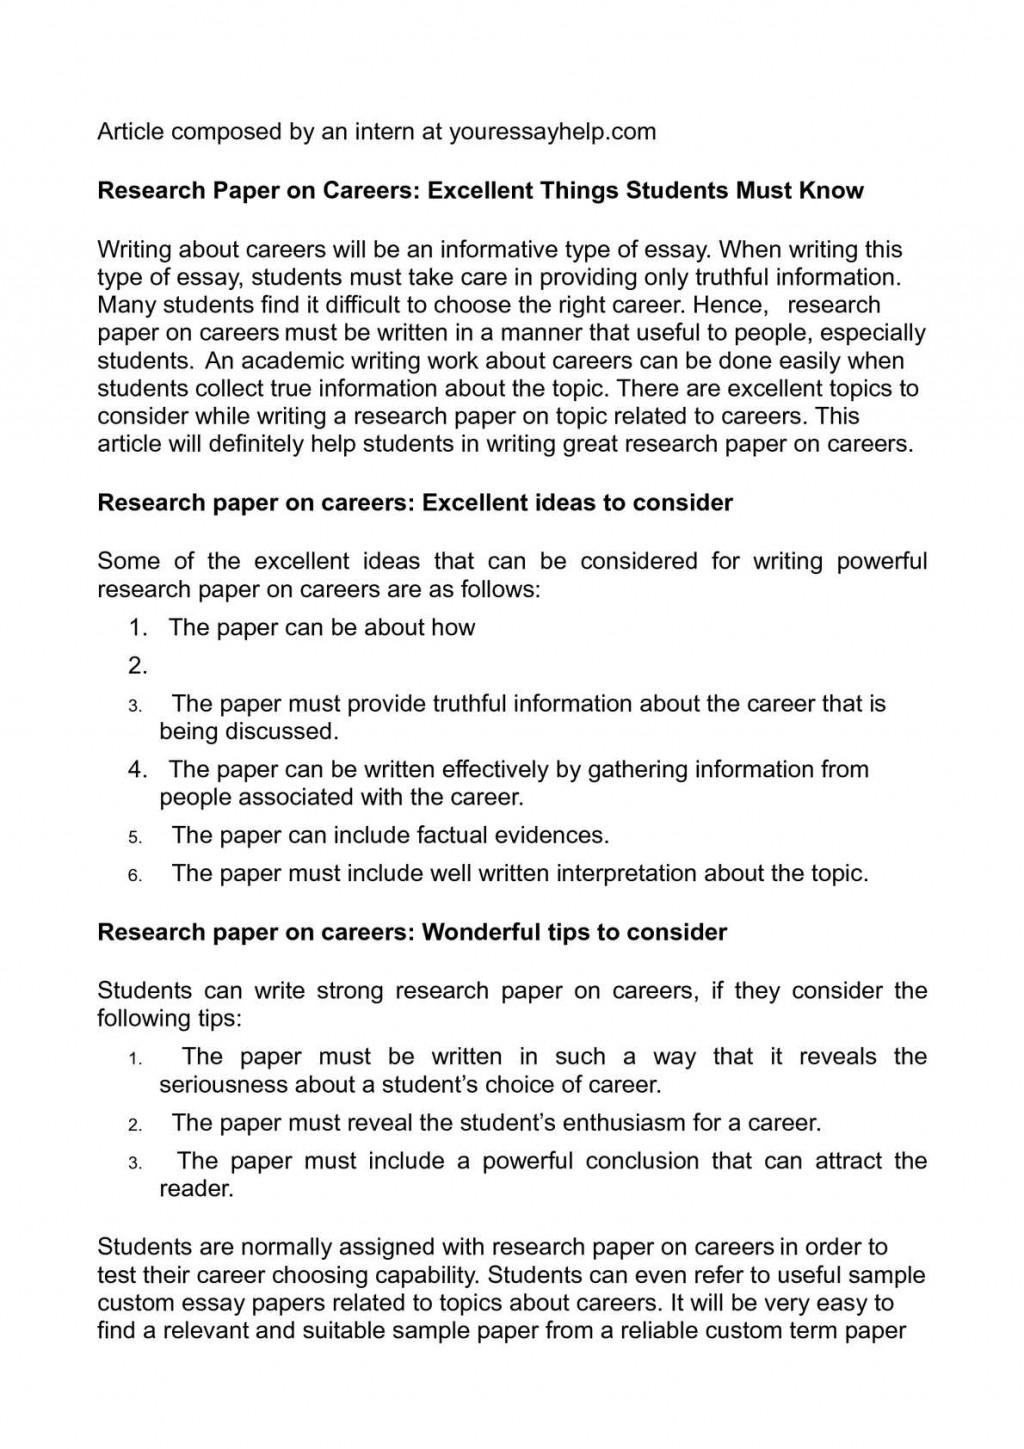 016 P1 Research Paper Career Related Singular Topics Large